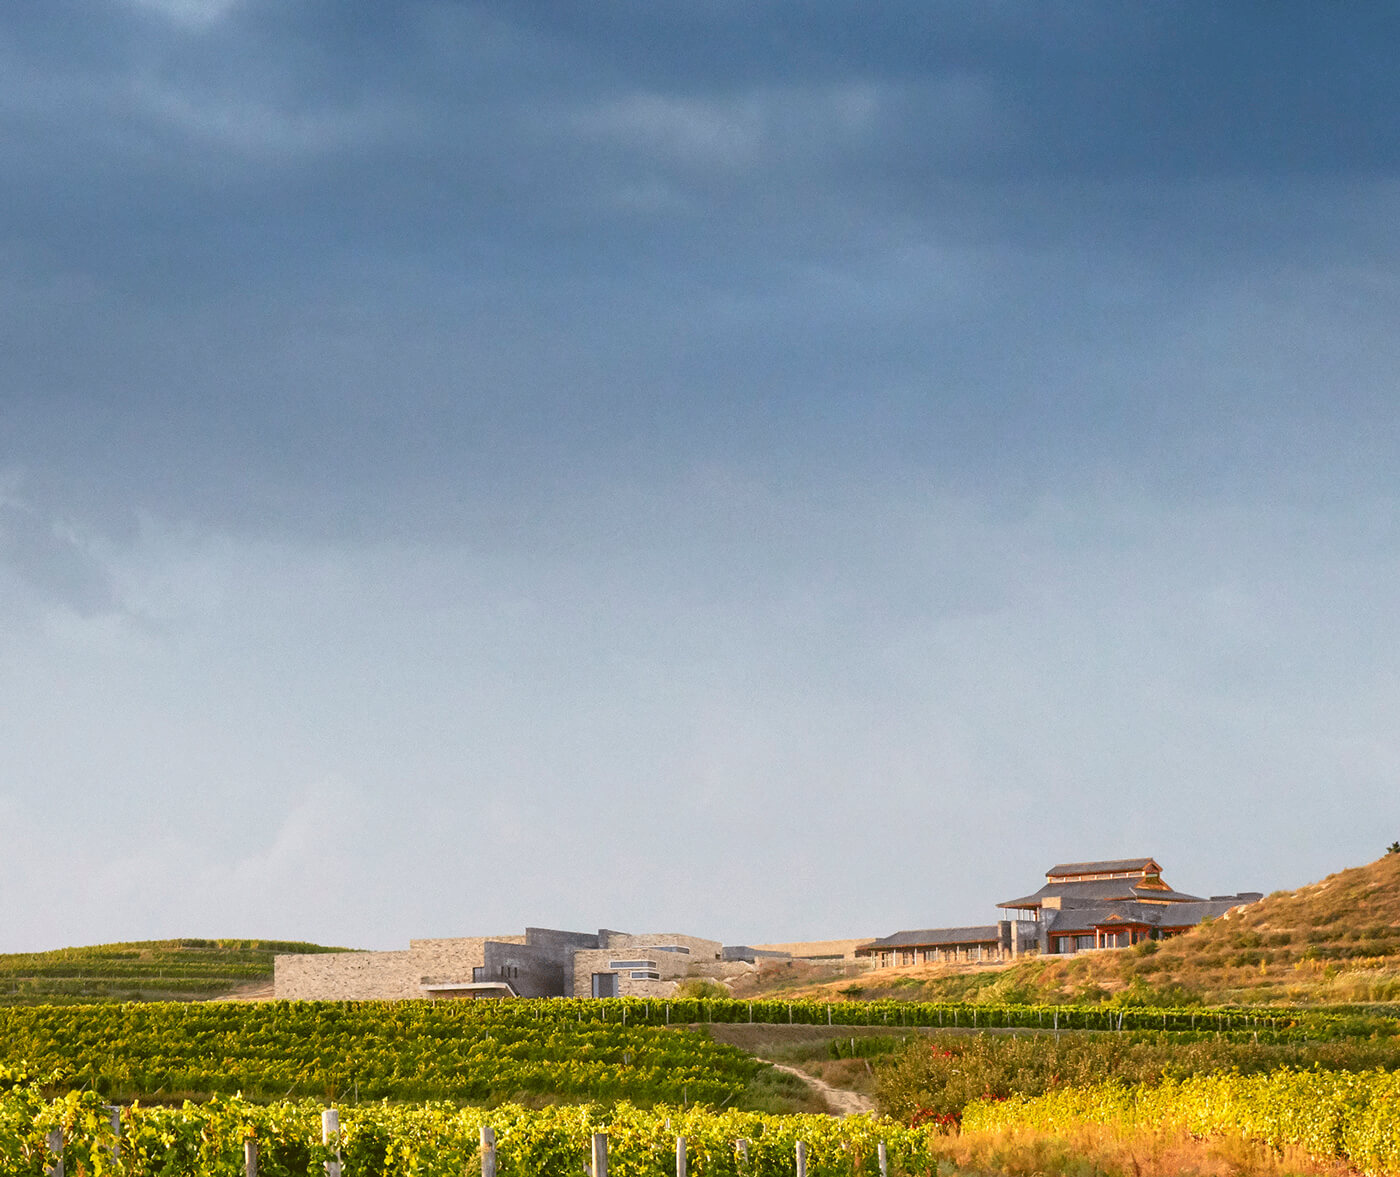 domaine-de-long-dai in China's Penglai - Yantai wine region